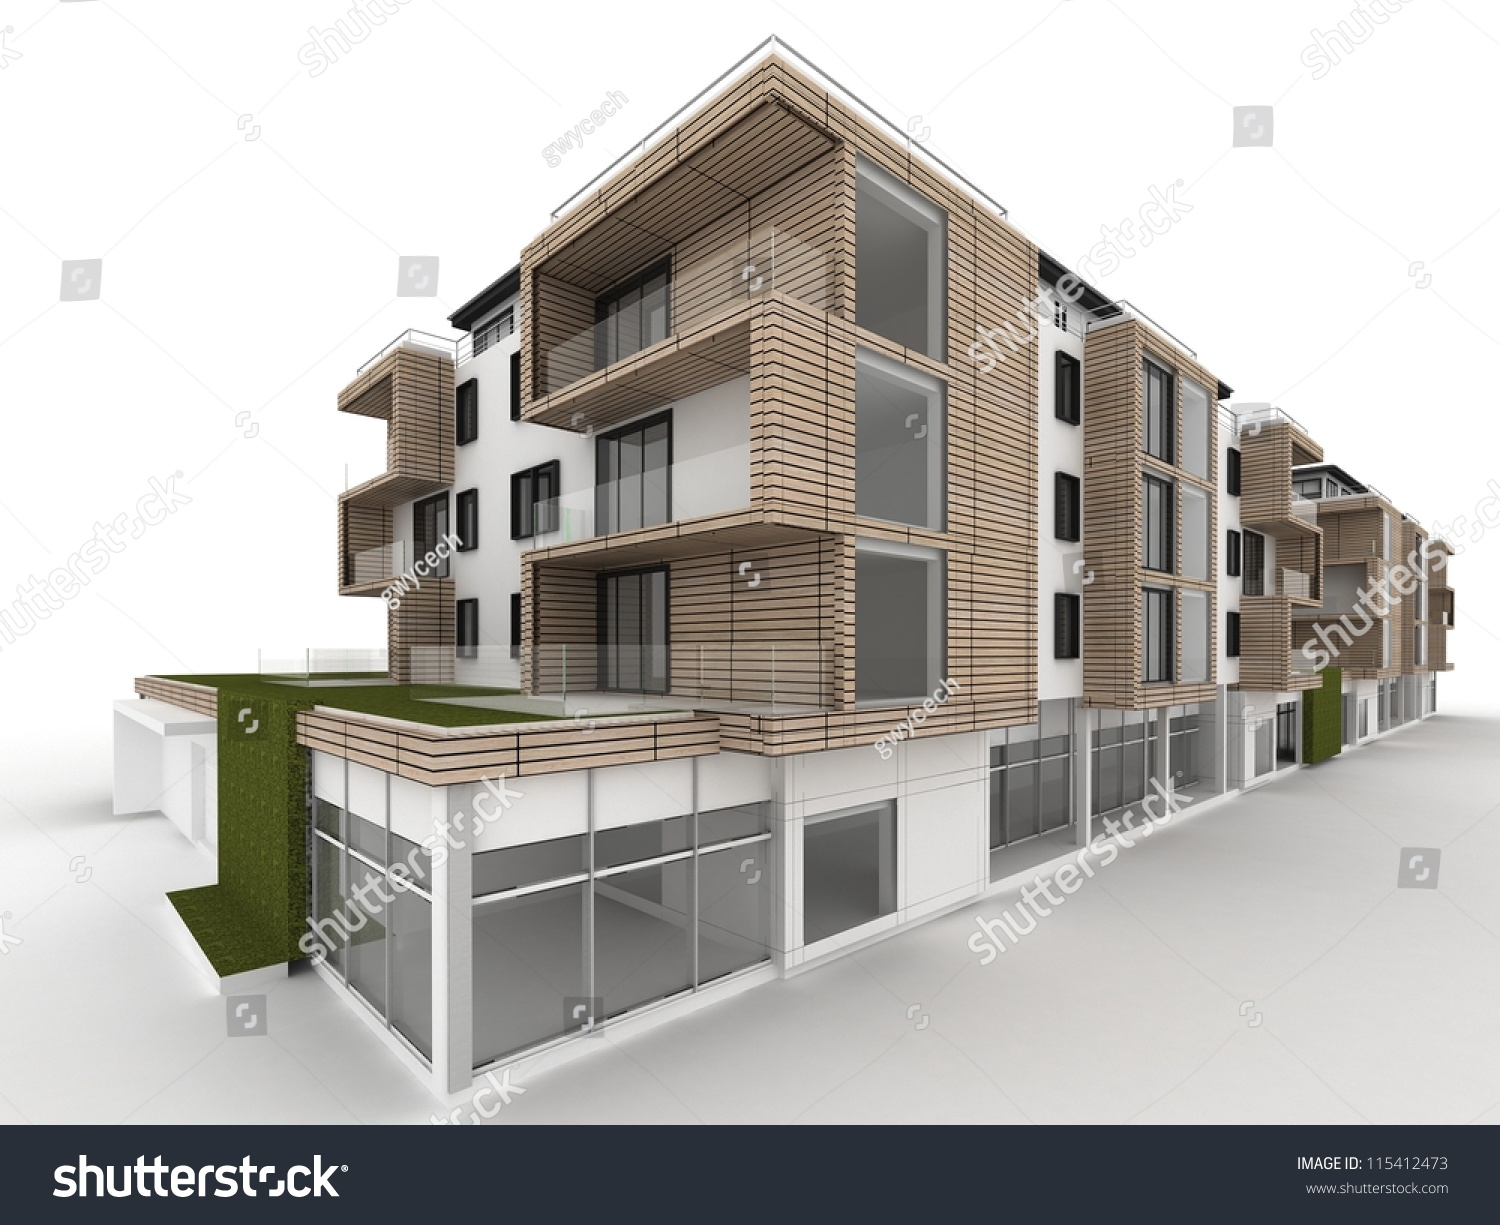 Architecture design visualization apartment building stock for Architecture and design